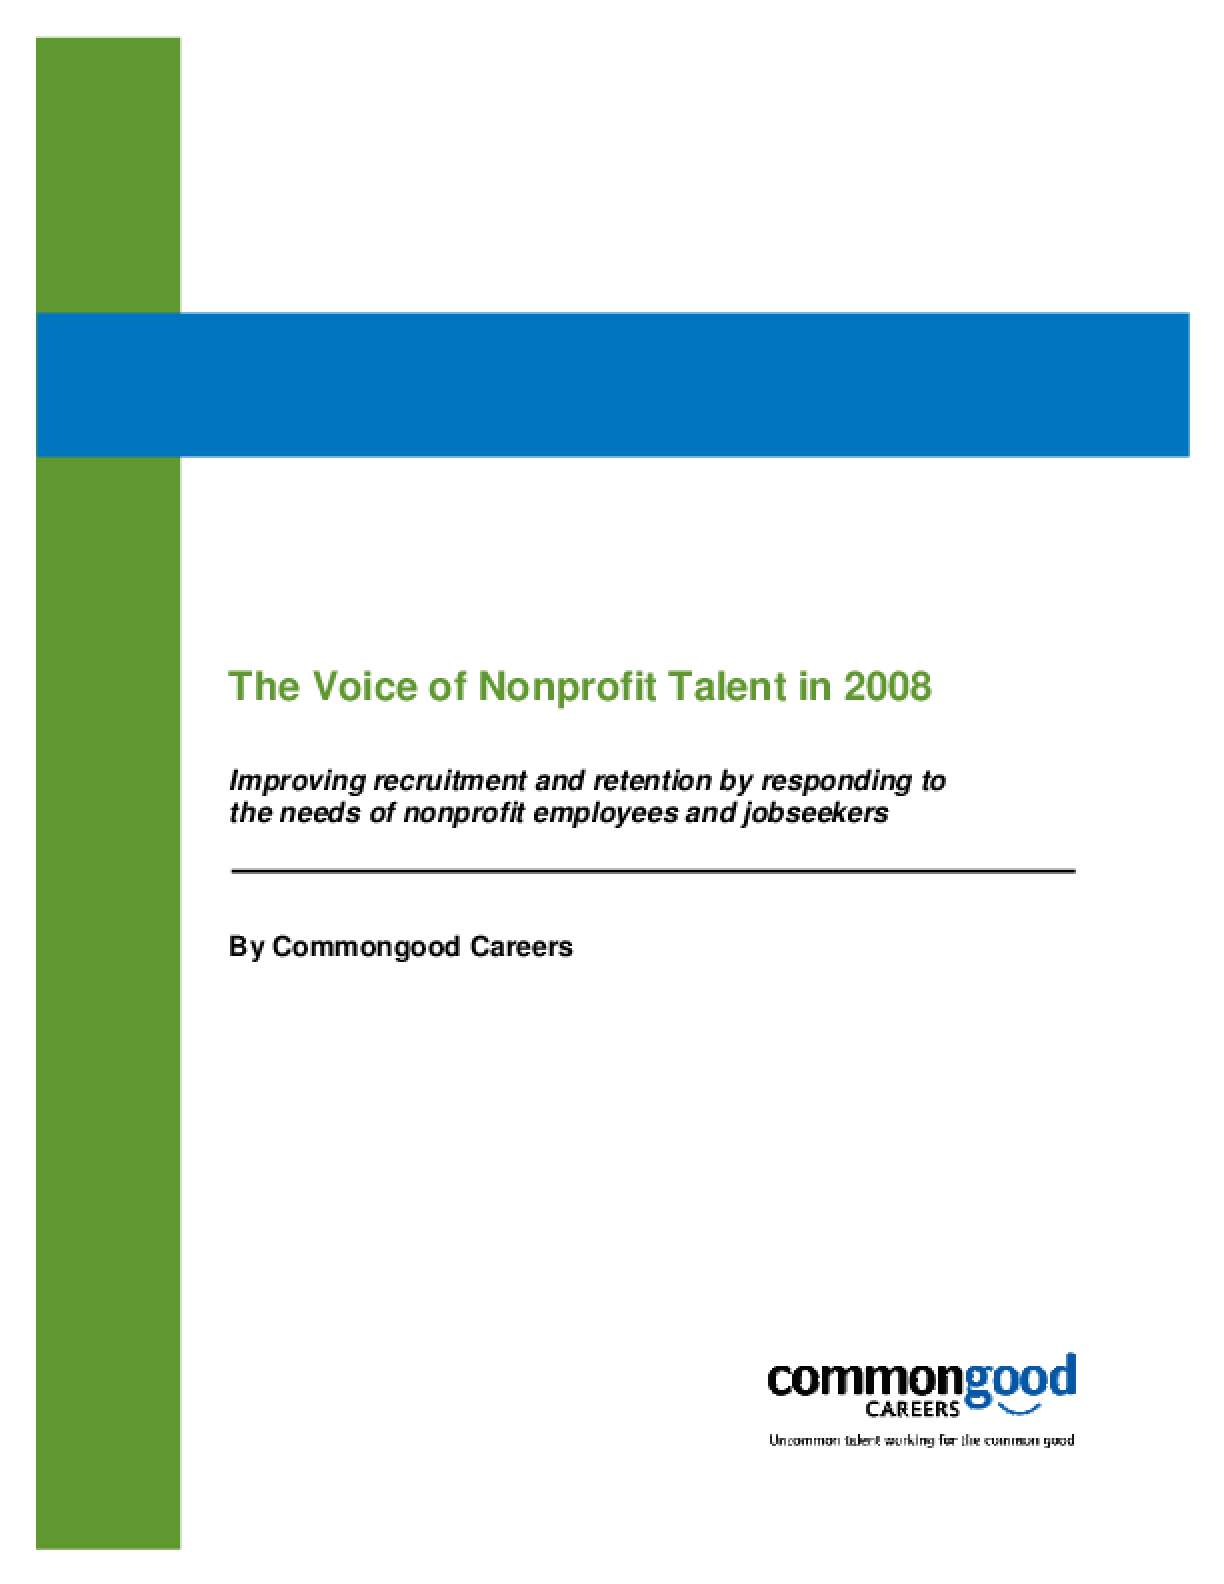 The Voice of Nonprofit Talent in 2008